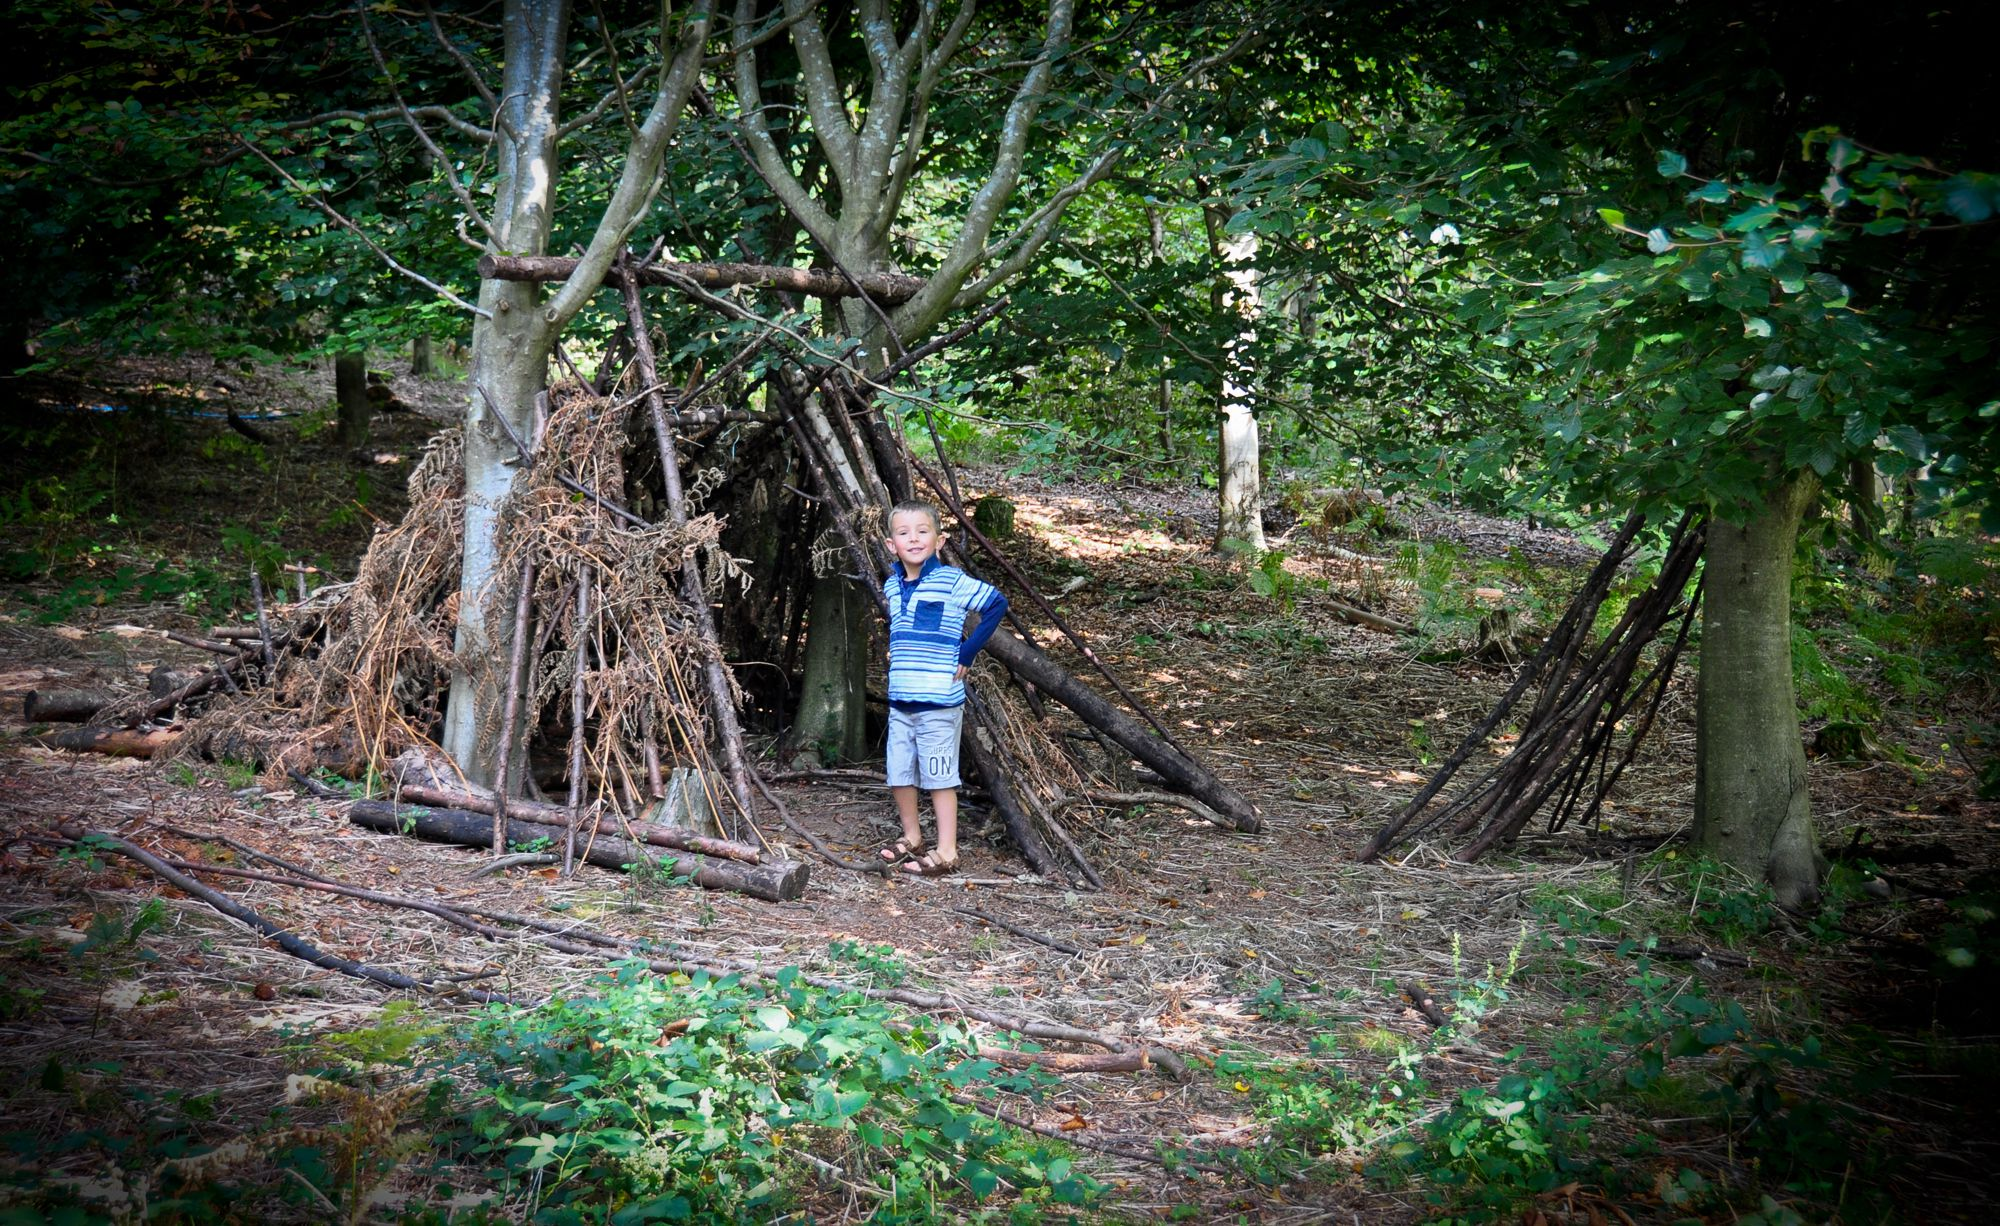 Family-friendly campsites in South East England